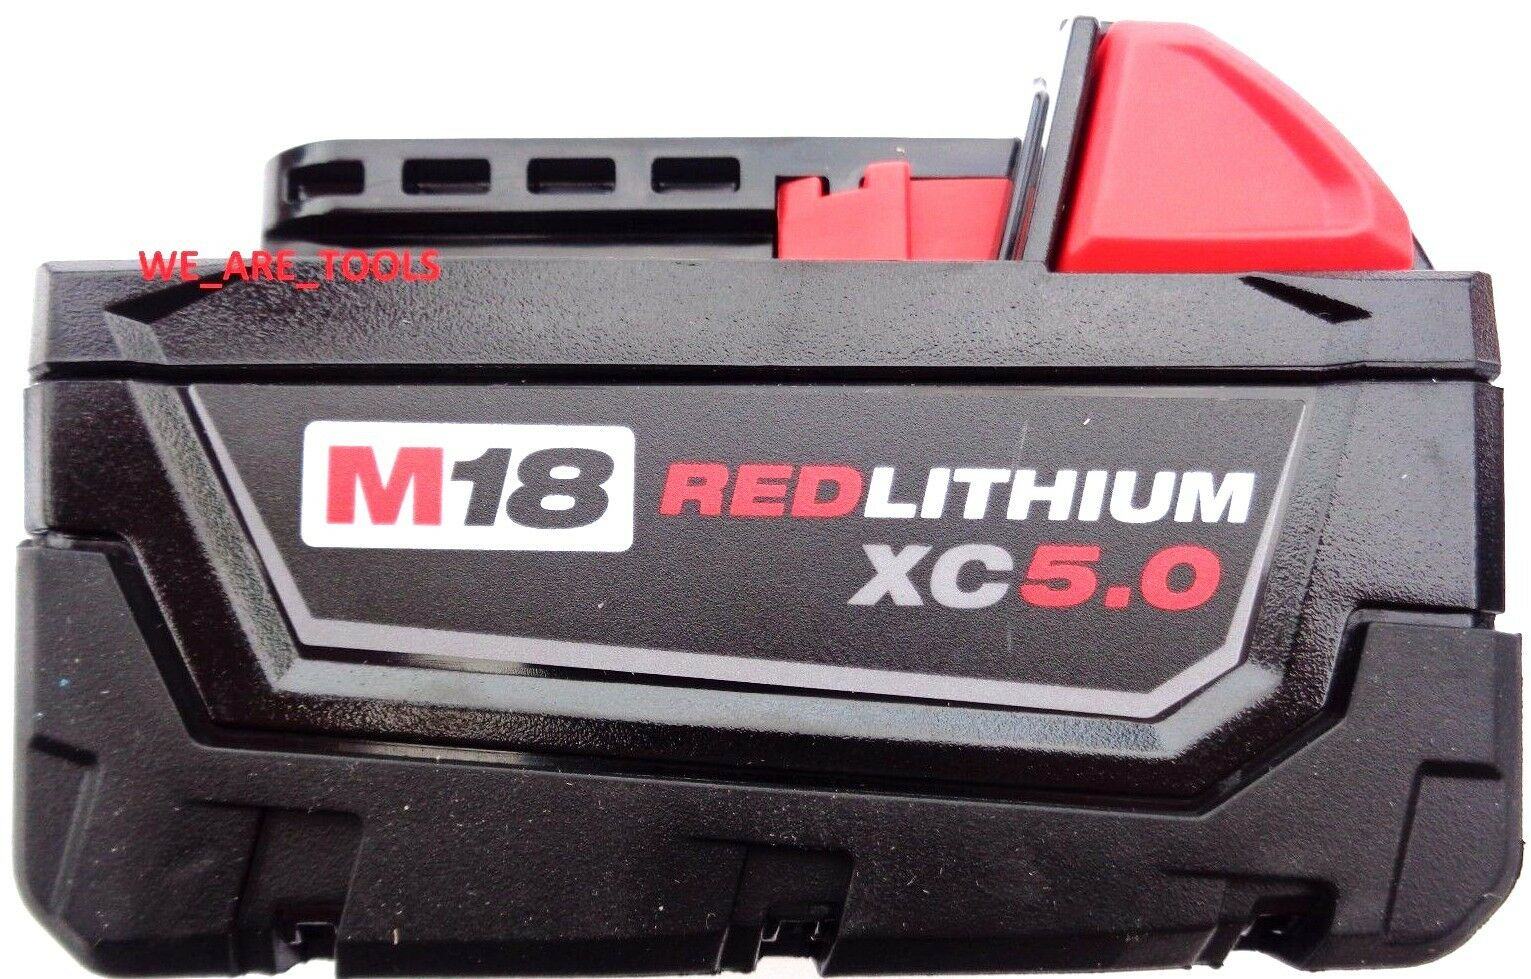 (1) GENUINE 18V Milwaukee 48-11-1850 5.0 AH Battery M18 18 Volt XC 5.0 Red